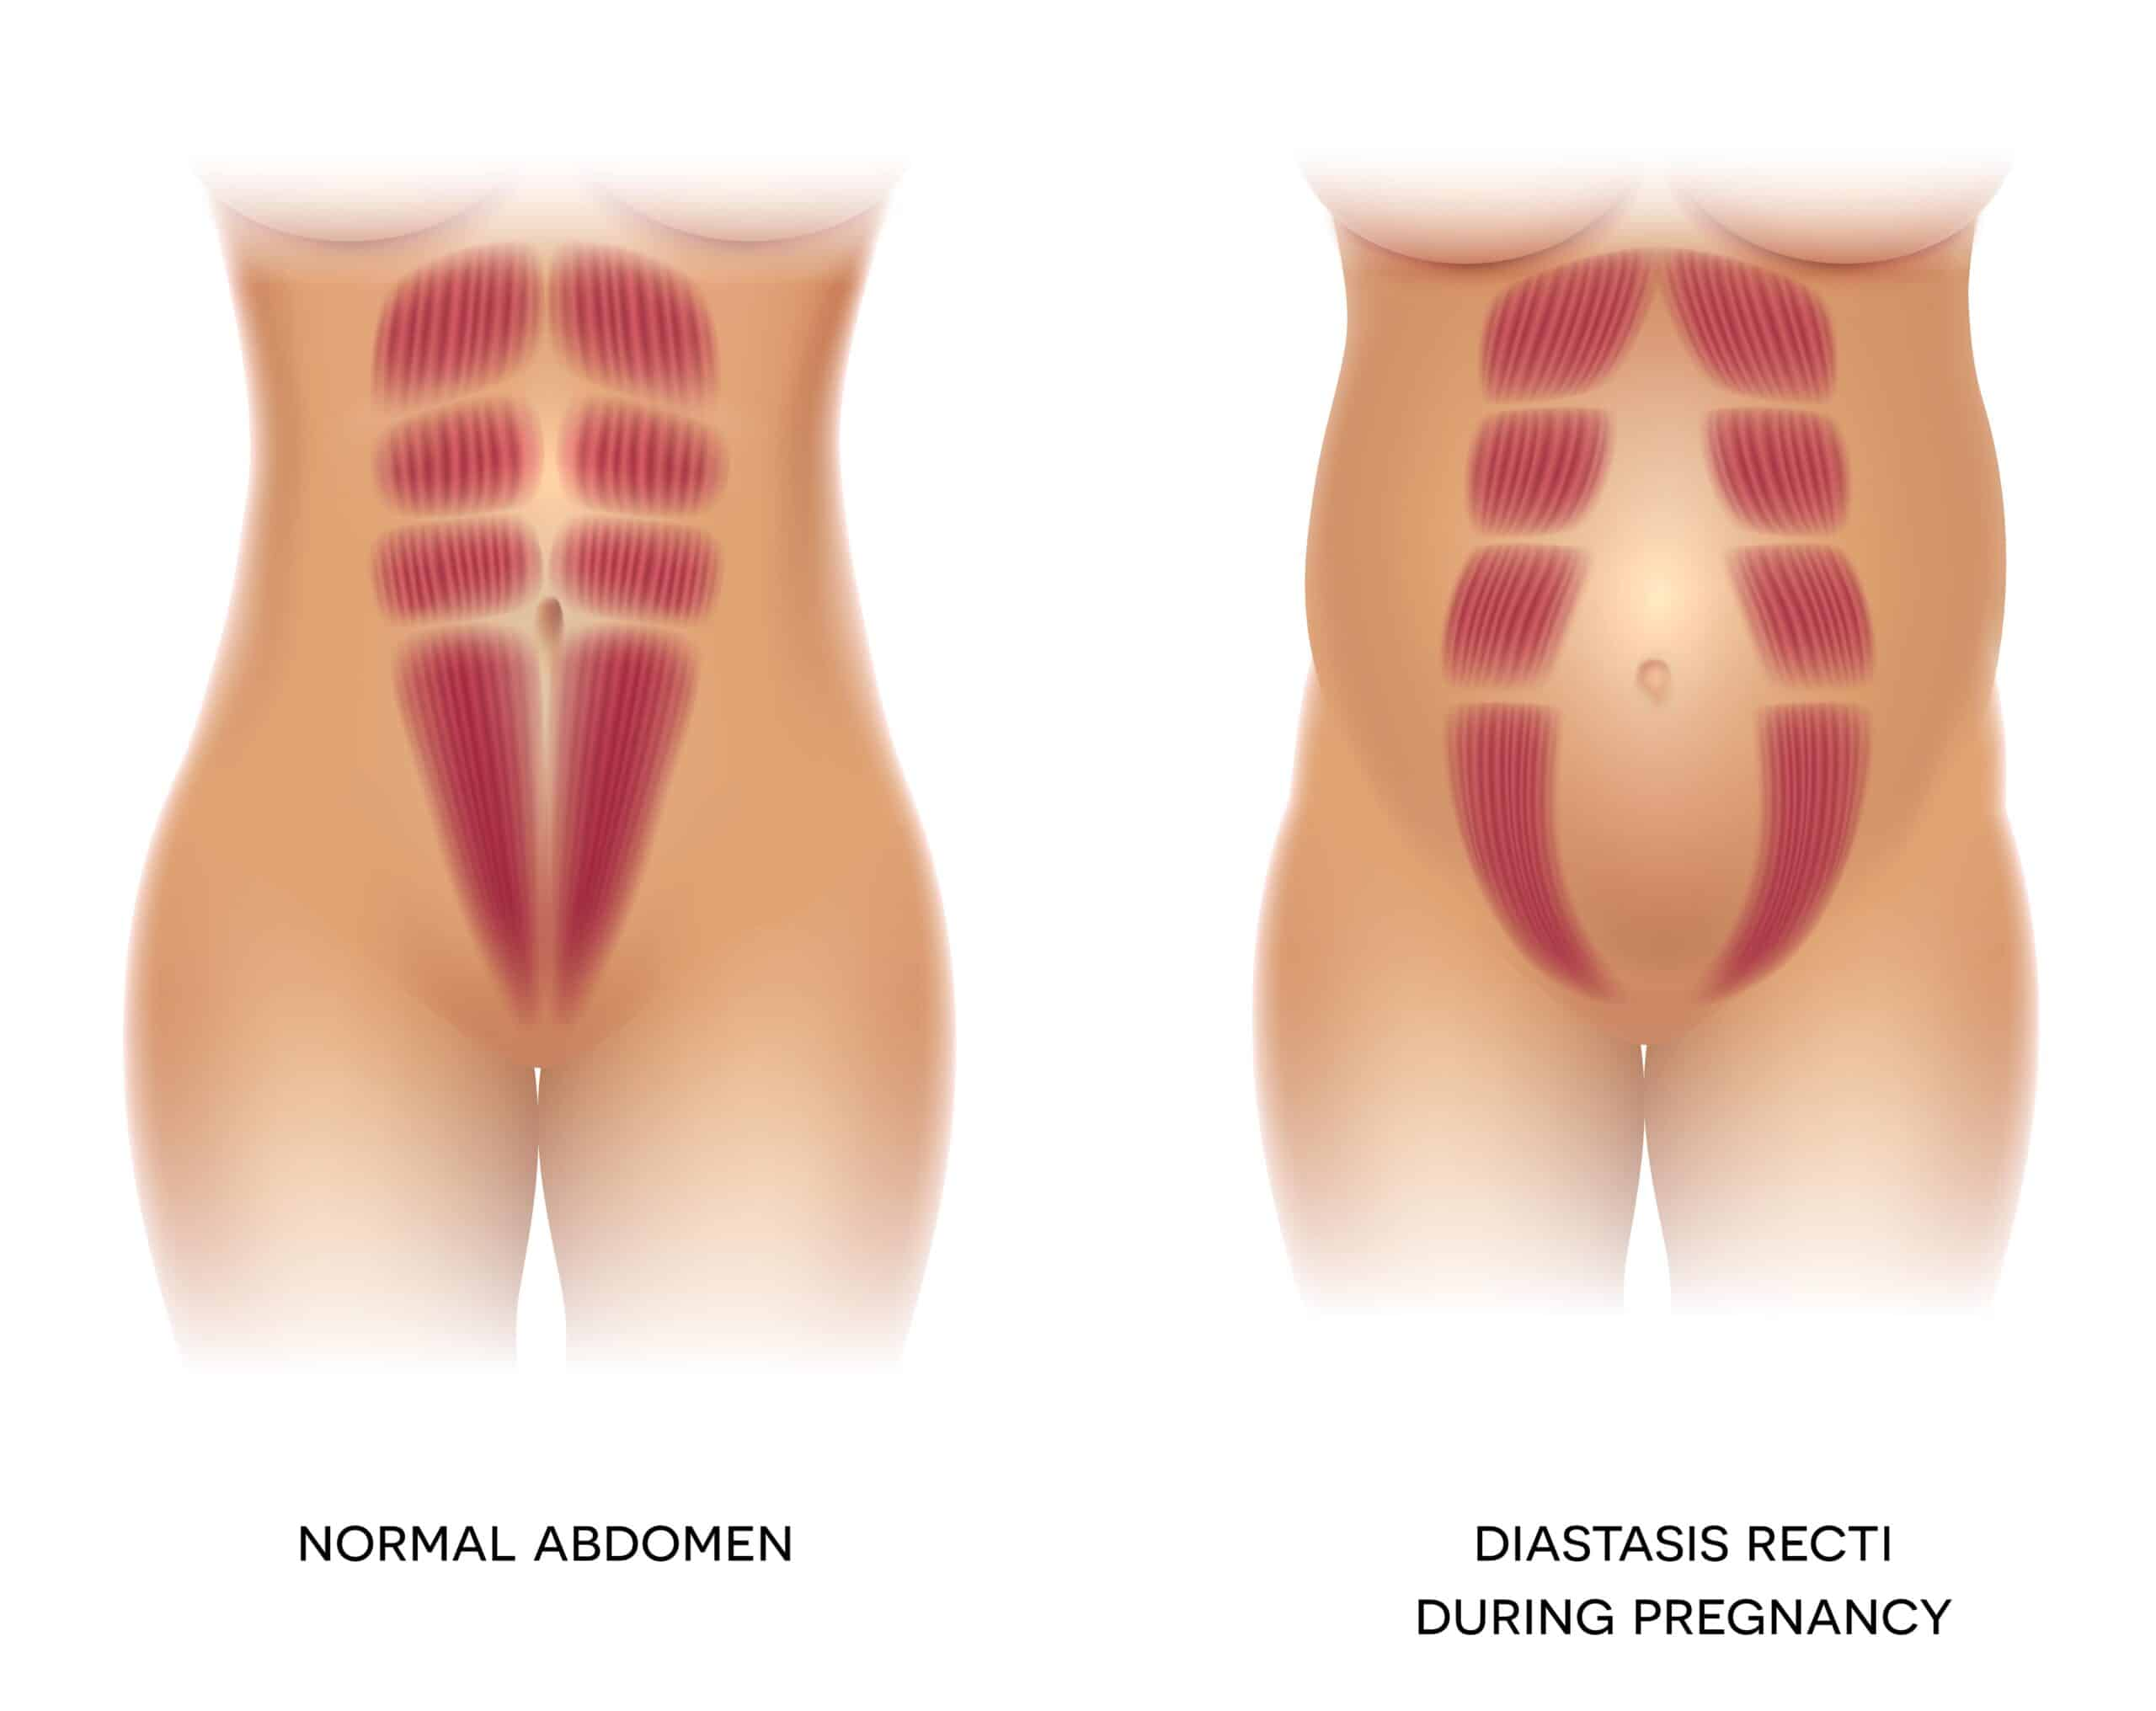 diagram of diastasis recti normal abdomen vs. during pregnancy